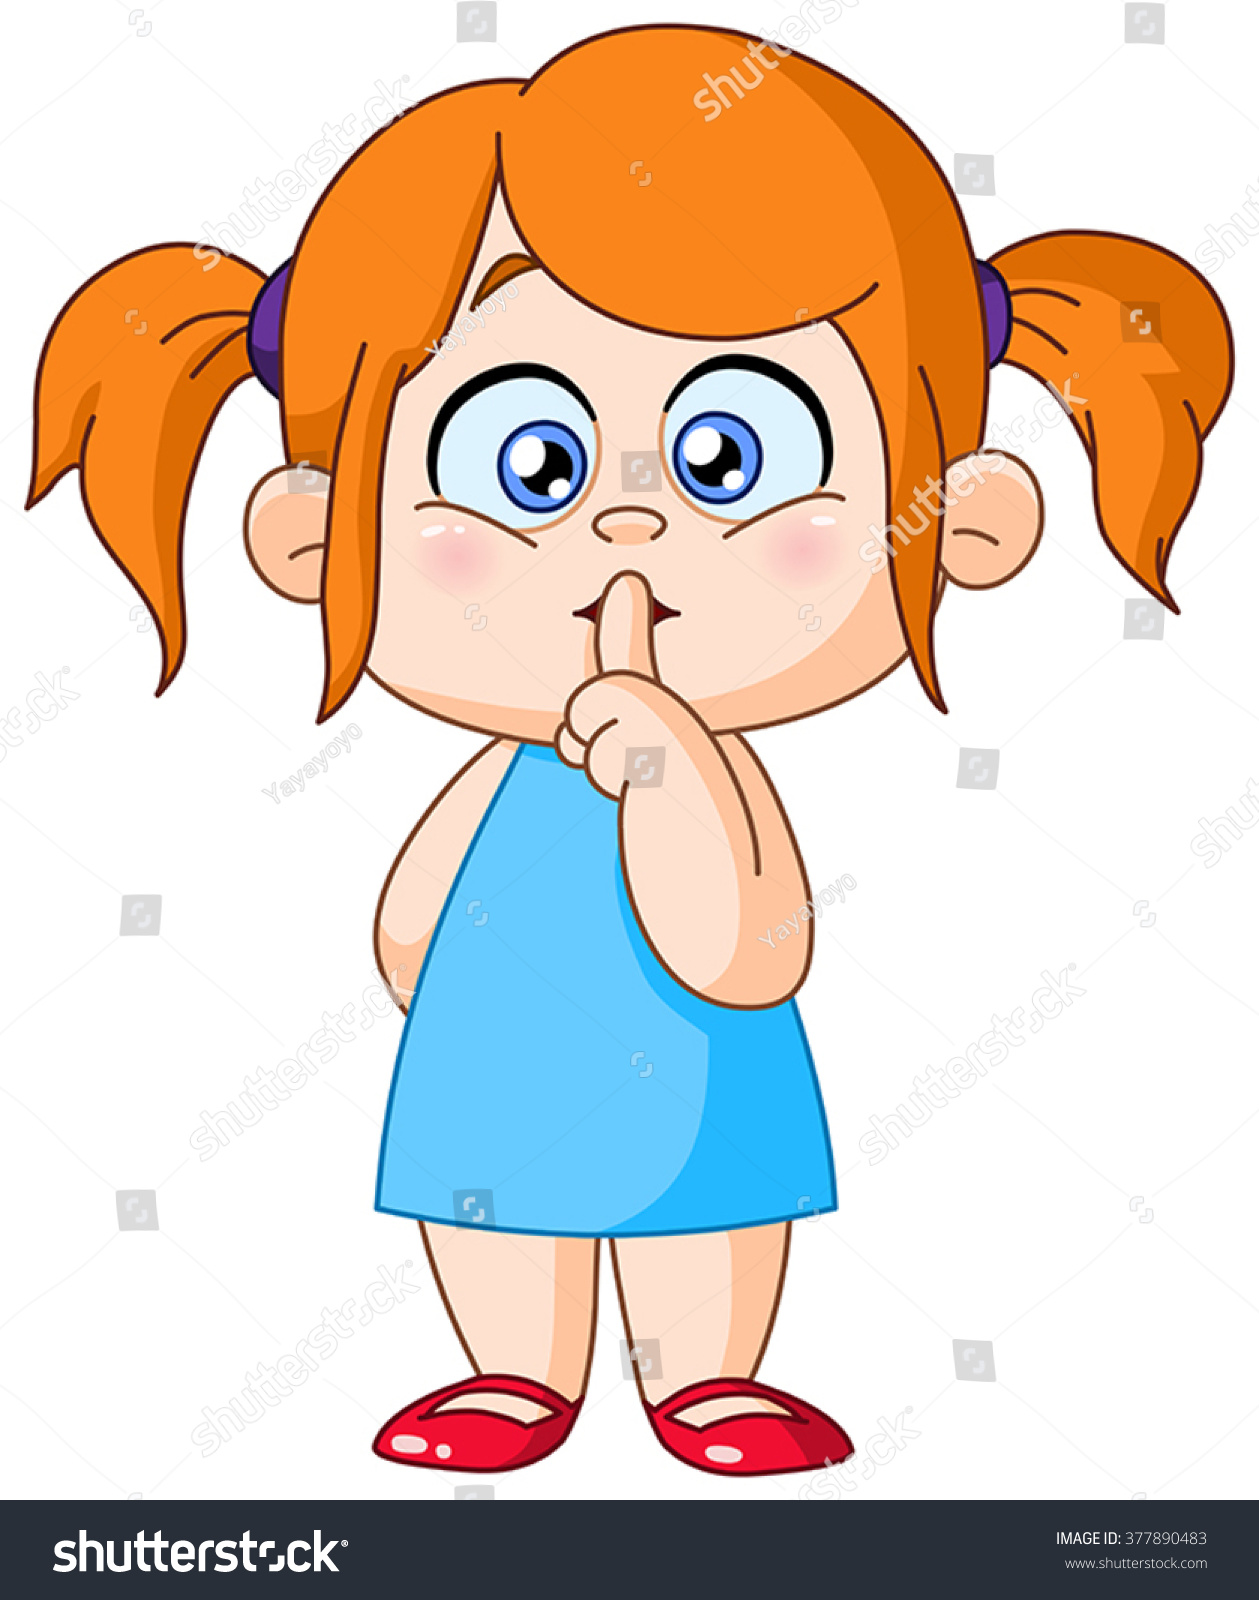 Stock Vector Young Girl With Finger On Lips Making The Silence Sign on Lips Zipped Clip Art Animated